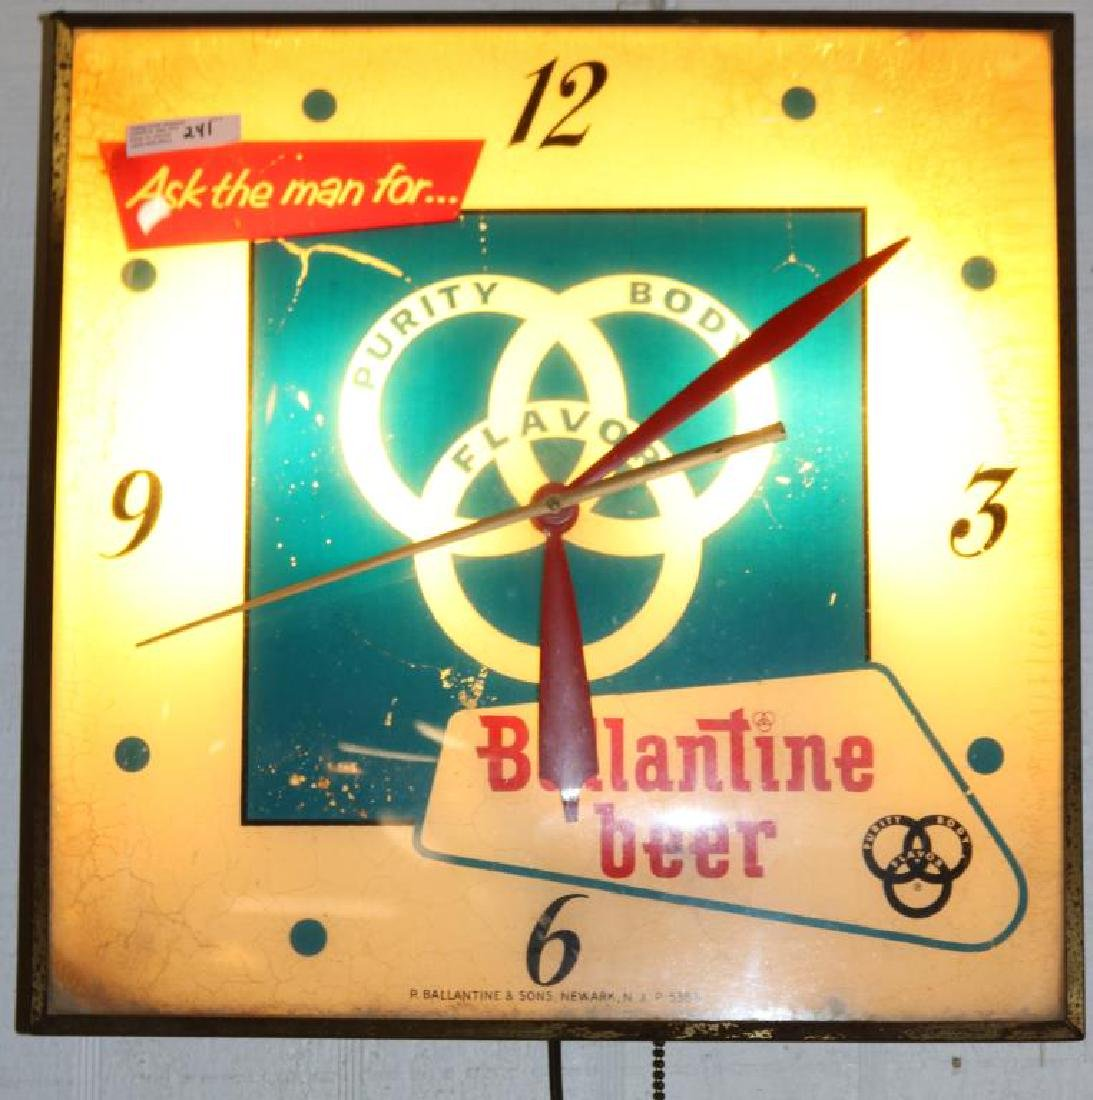 OLD VALENTINE BEER ADVERTISING CLOCK, AGE - 2